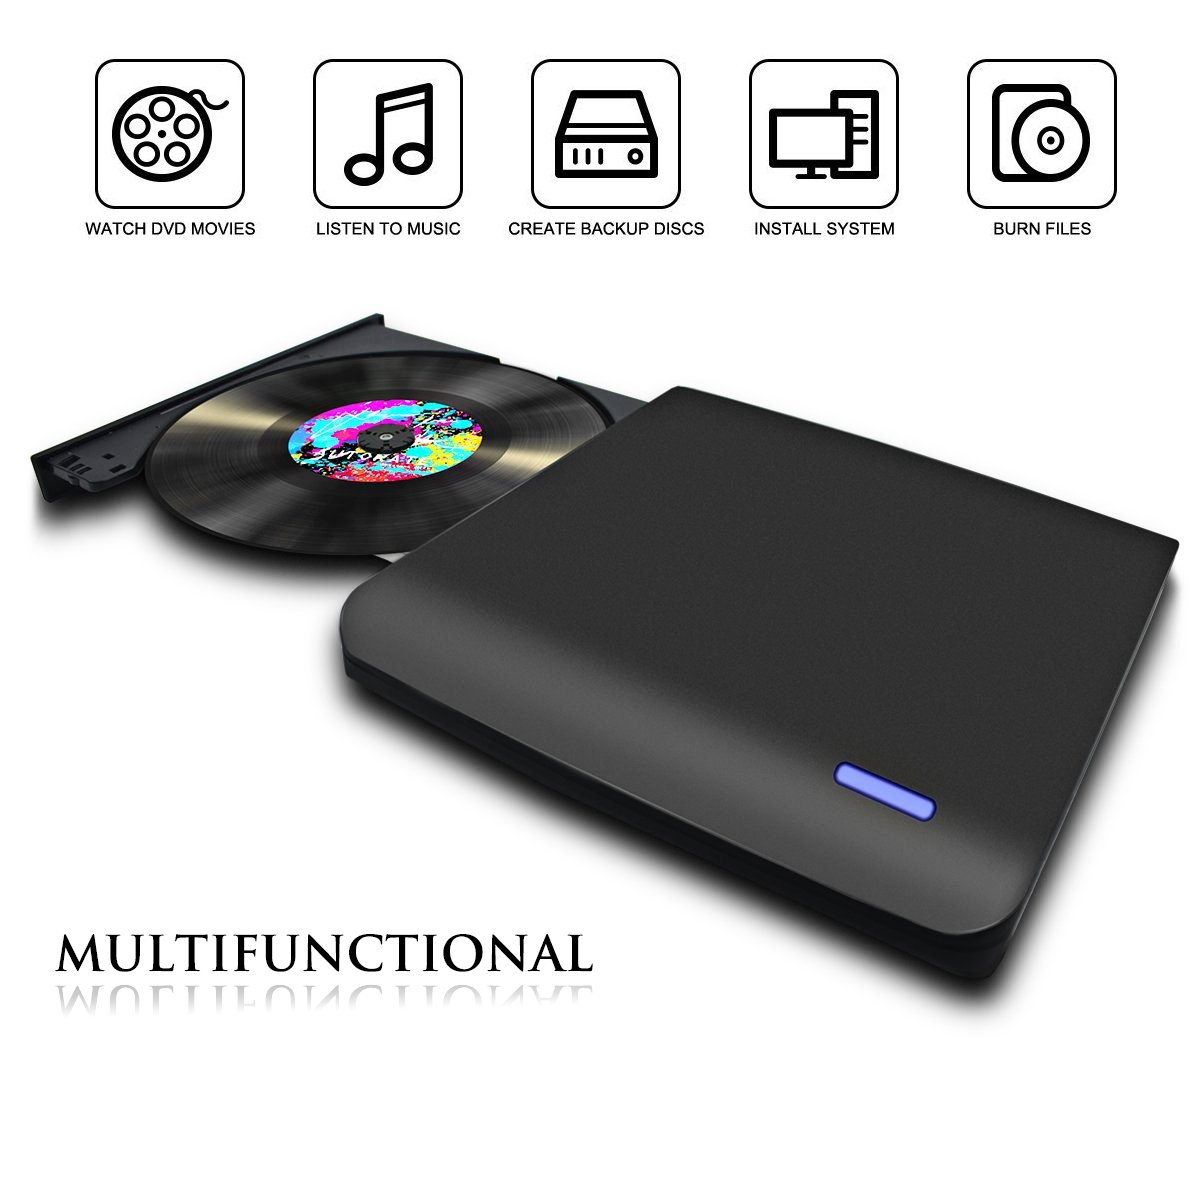 External CD/DVD Drive CD/DVD recorder, Portable CD DVD +/-RW Drive Slim DVD/CD Rom Rewriter Burner Writer, High Speed Data Transfer for Macbook Pro Laptop/Desktops Win 7/8.1/10 and Linux OS by Quartet trade (Image #2)